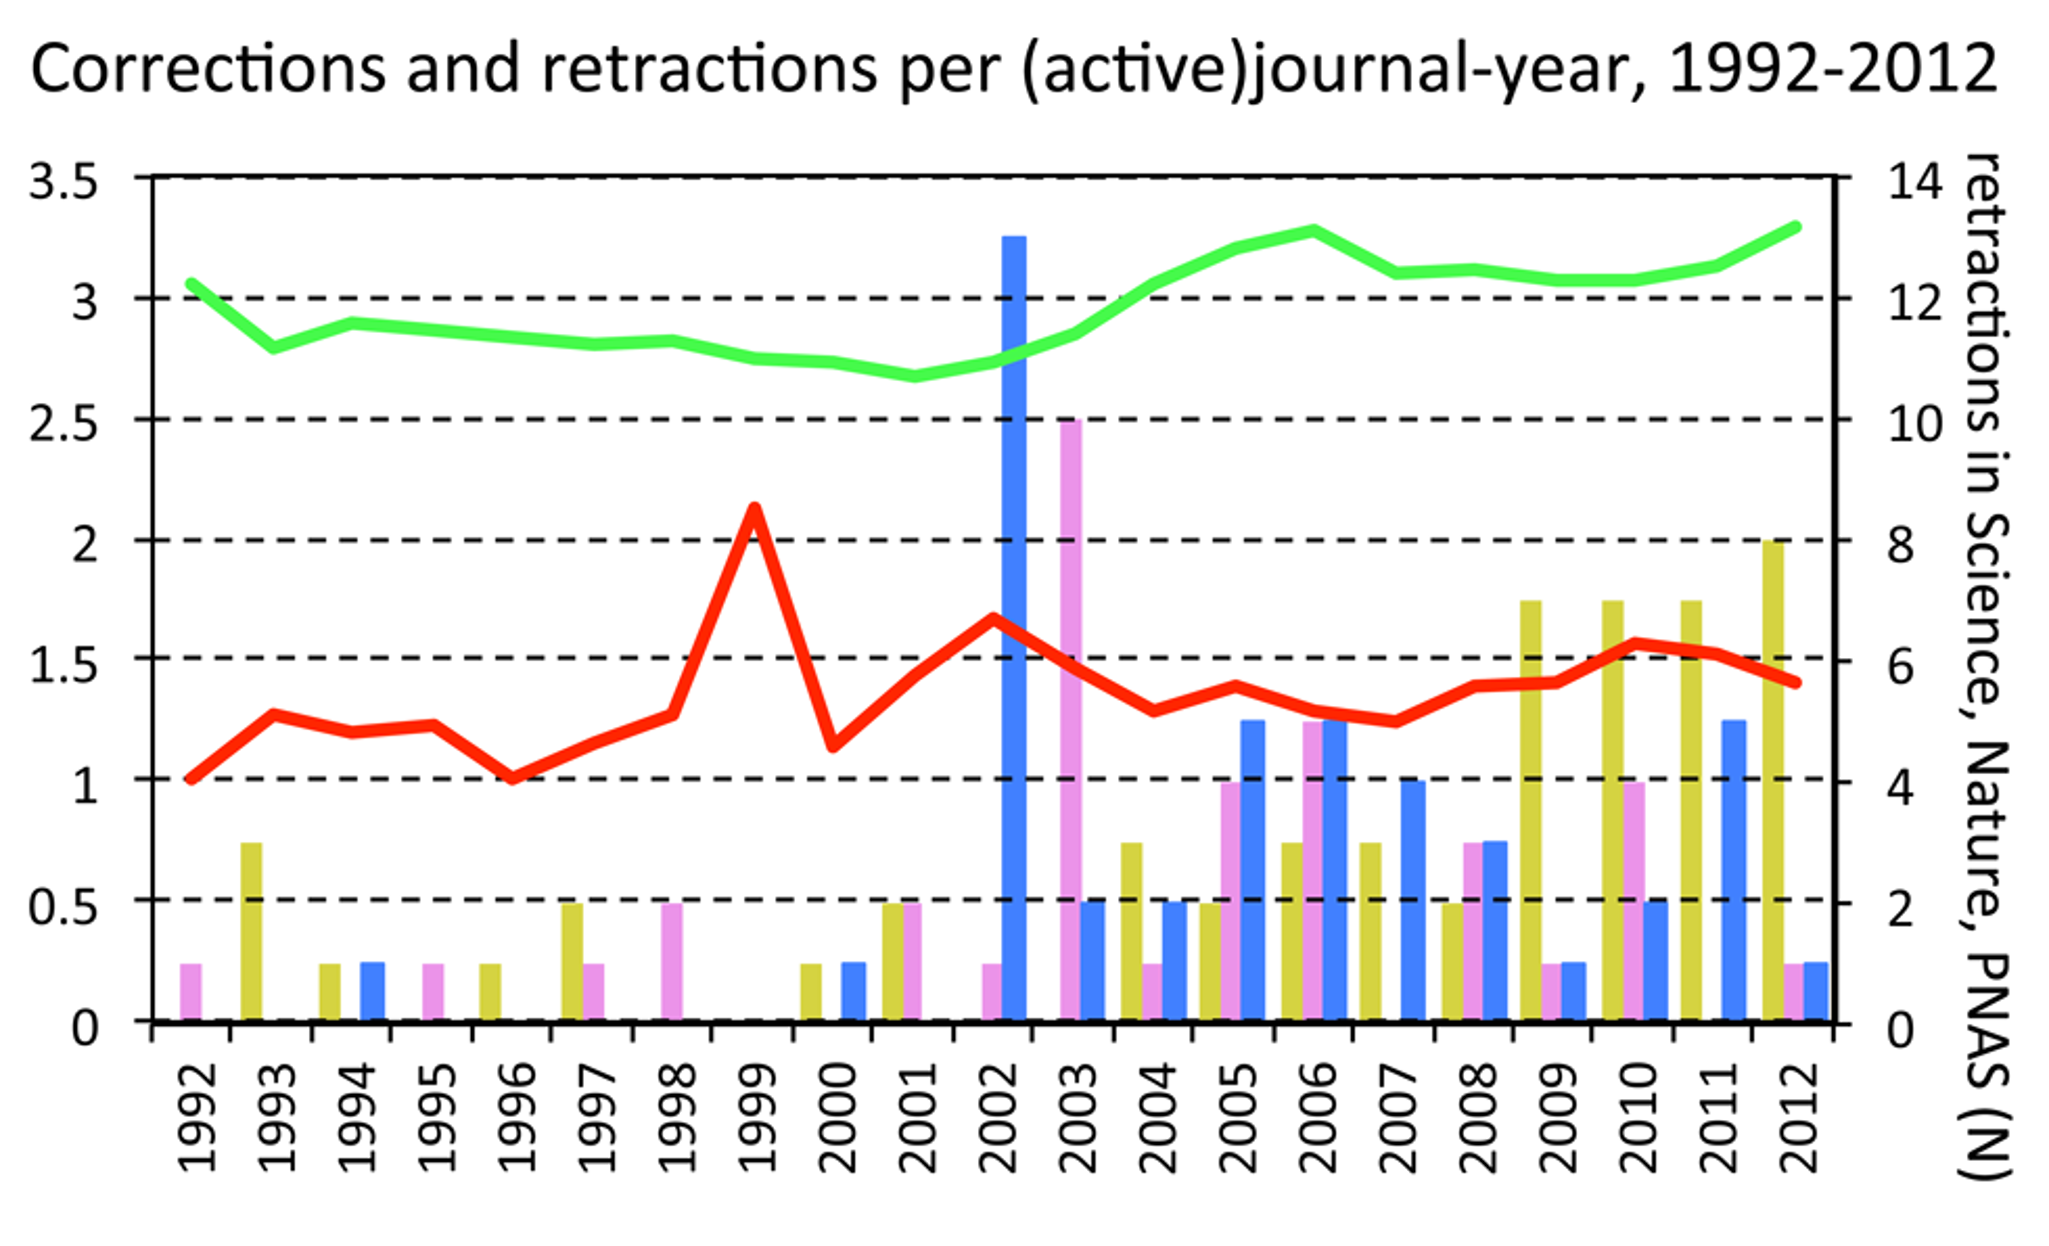 Corrections per-correcting-journal, retractions per-retracting-journal, and number of retractions issued by three major journals, by year.